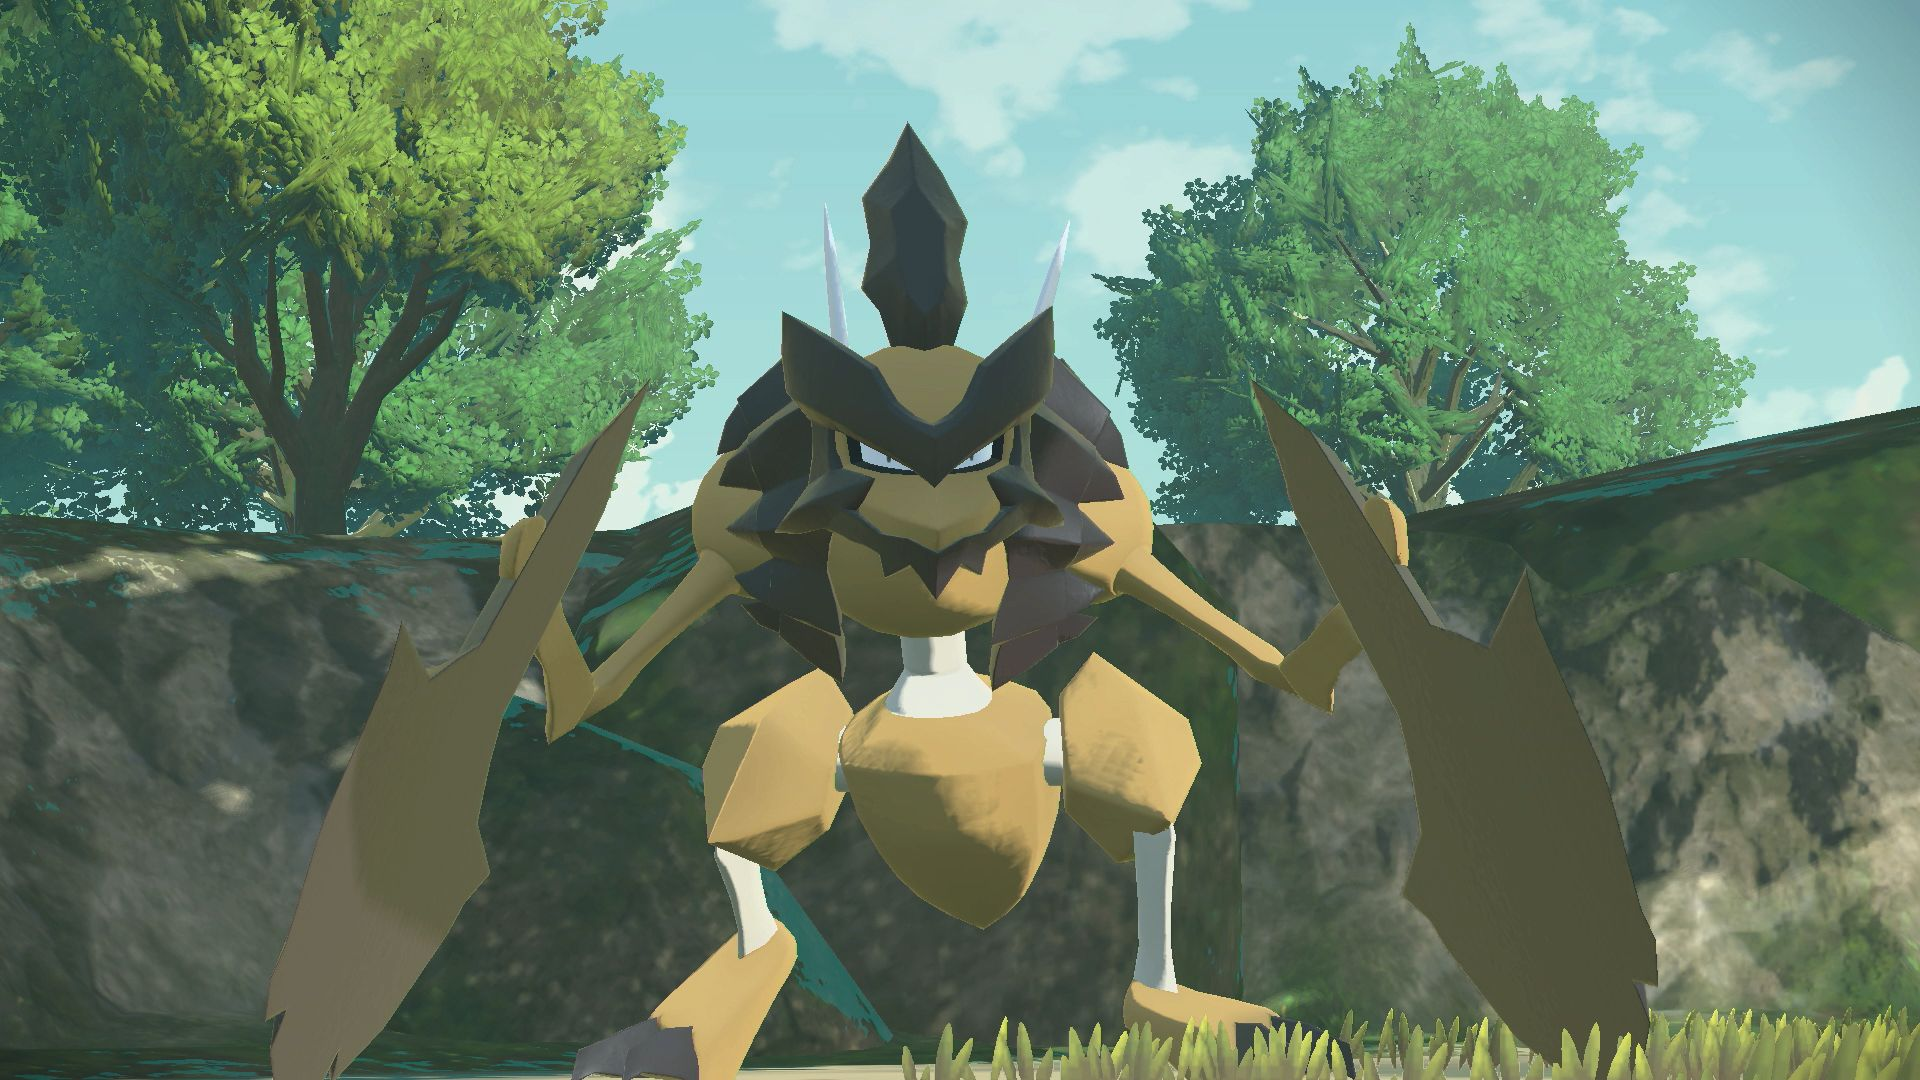 Pokémon Legends: Arceus screenshot of the rock type Kleavor, a bipedal rocky preying mantis-like creature in a forest.